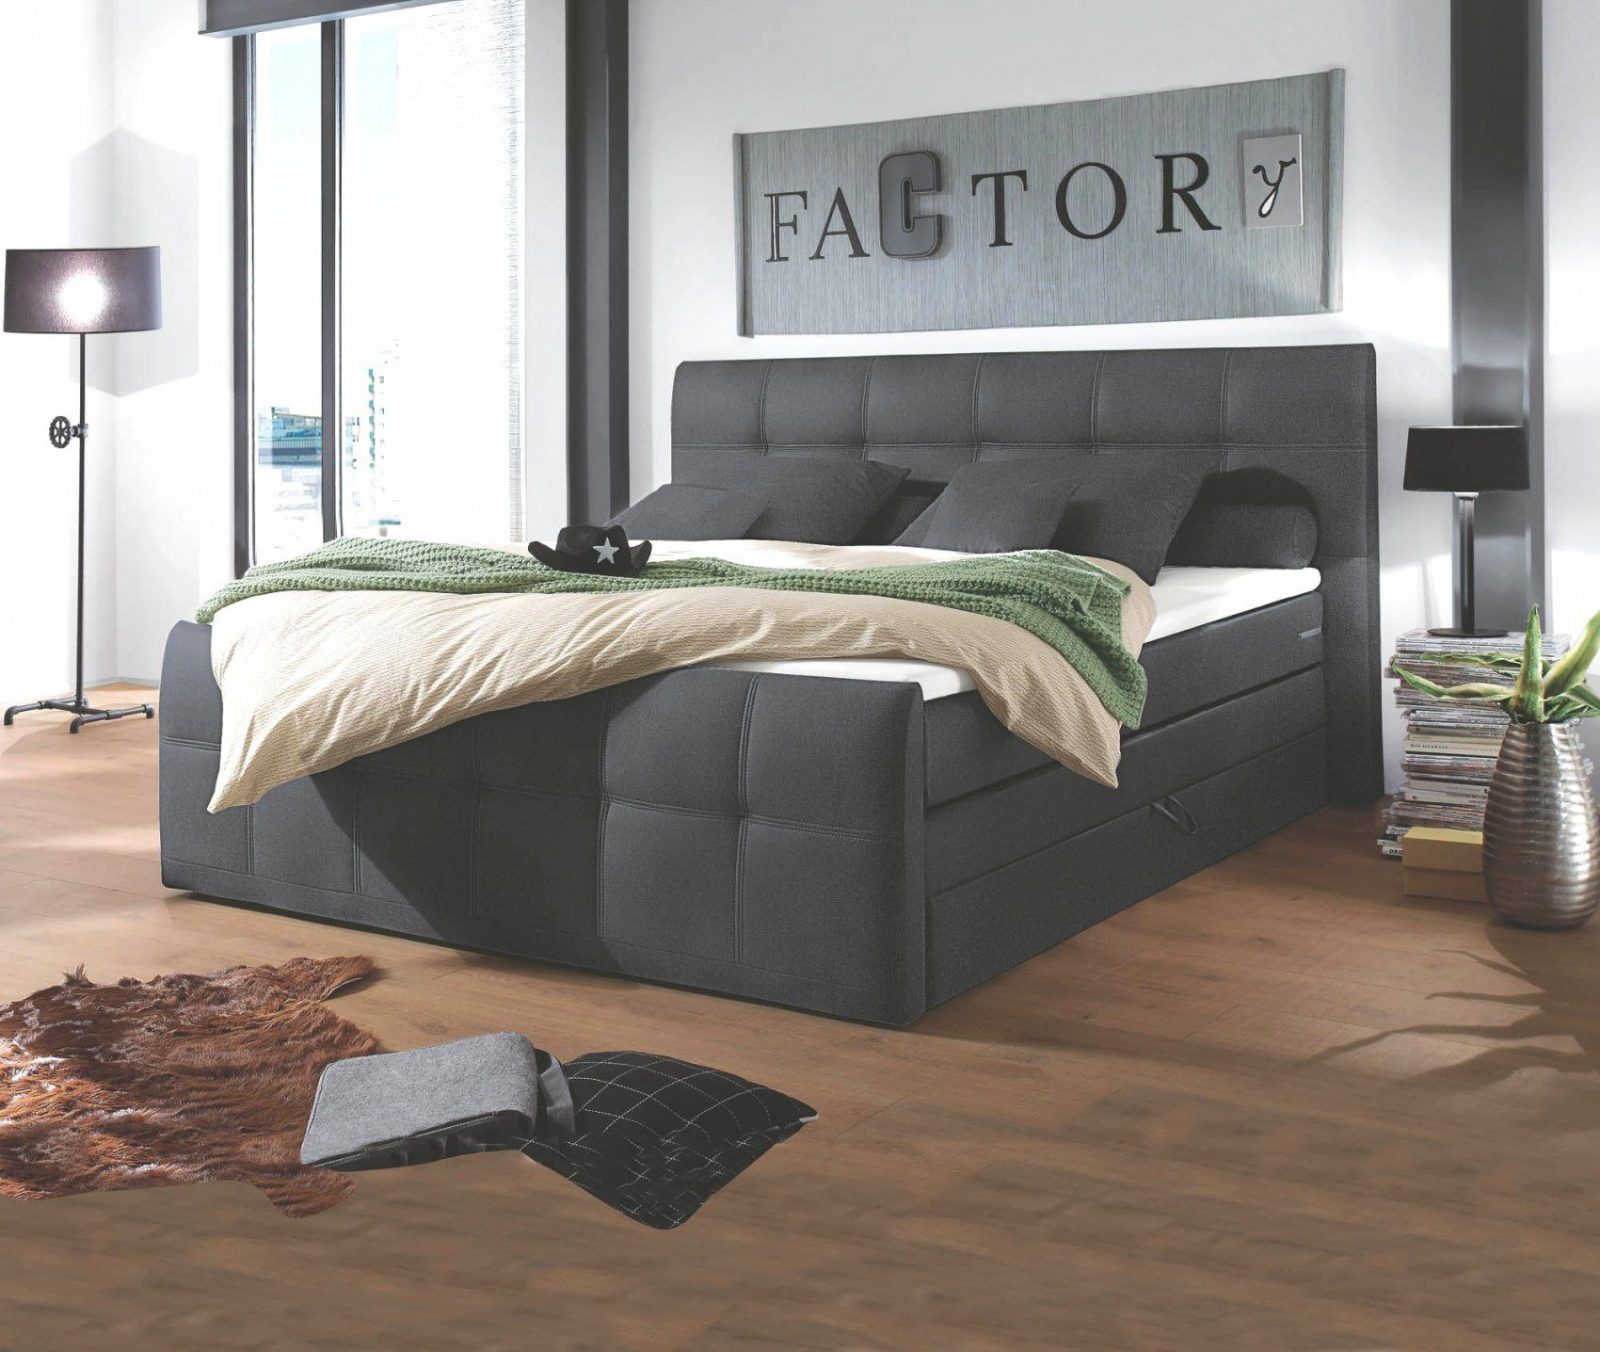 spektakul re inspiration boxspringbett auf rechnung und. Black Bedroom Furniture Sets. Home Design Ideas